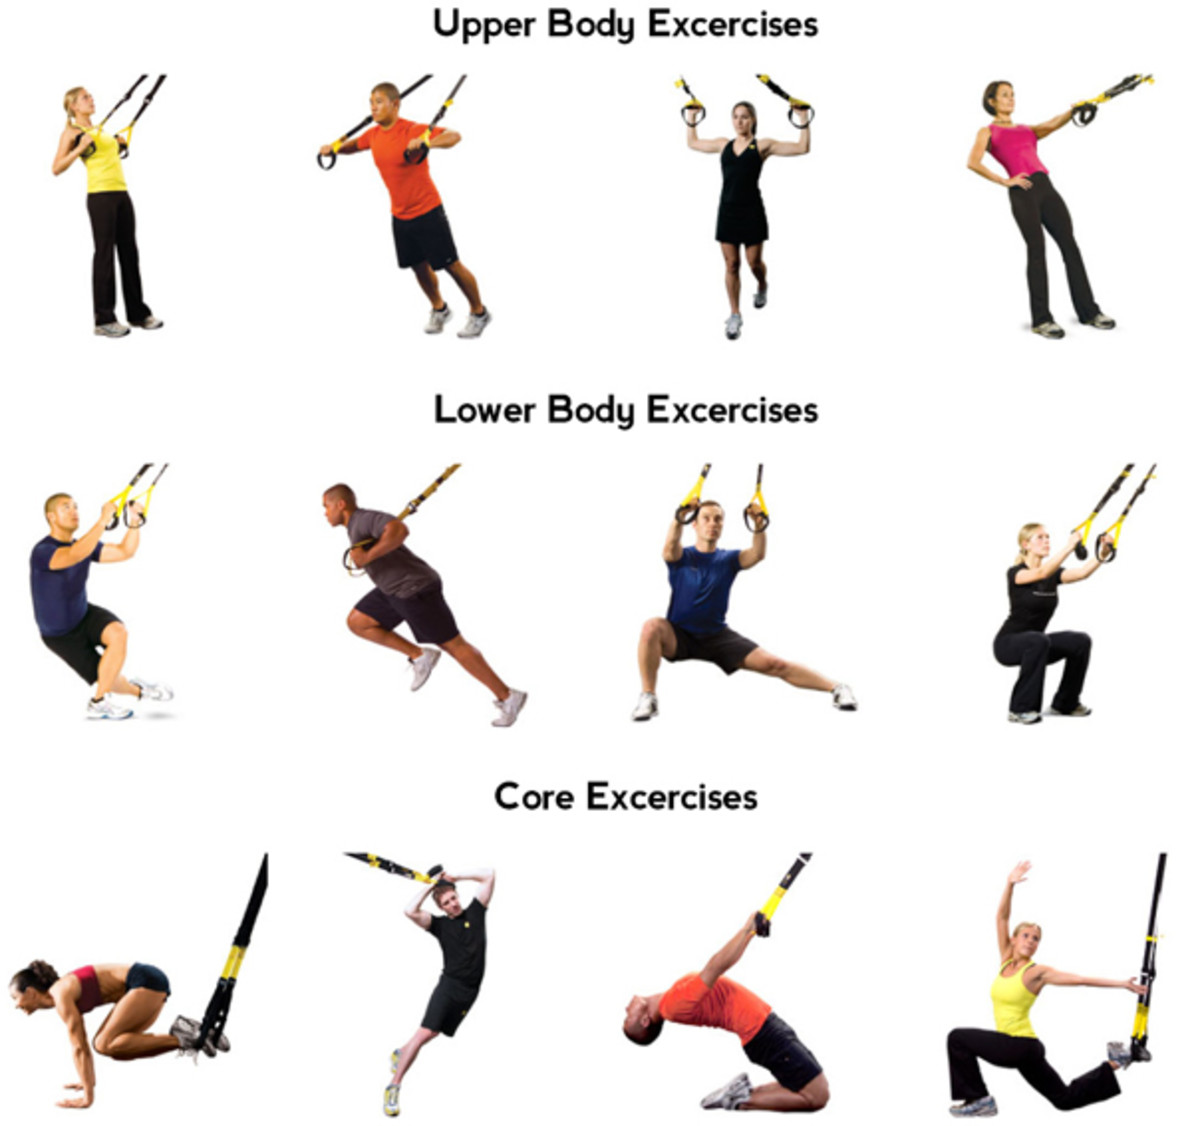 This poster shows 12 different exercises.